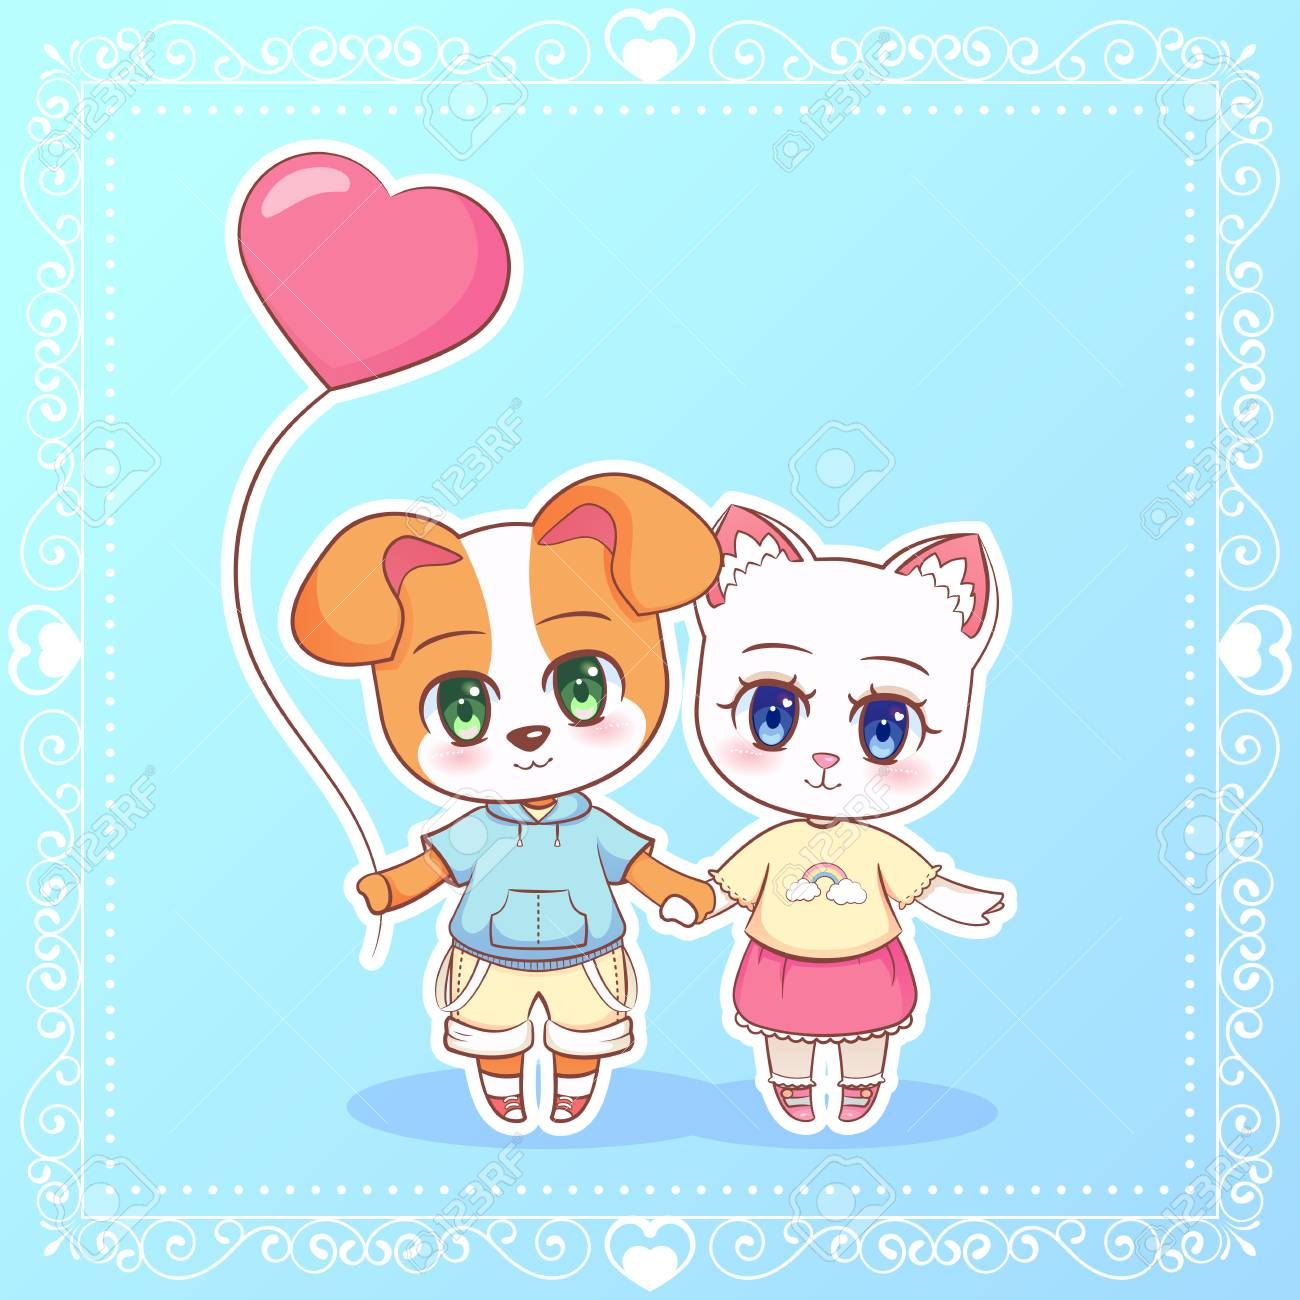 Sweet Little Cute Anime Cartoon Puppy Cat Kitten Dog Boy And Royalty Free Cliparts Vectors And Stock Illustration Image 93461793